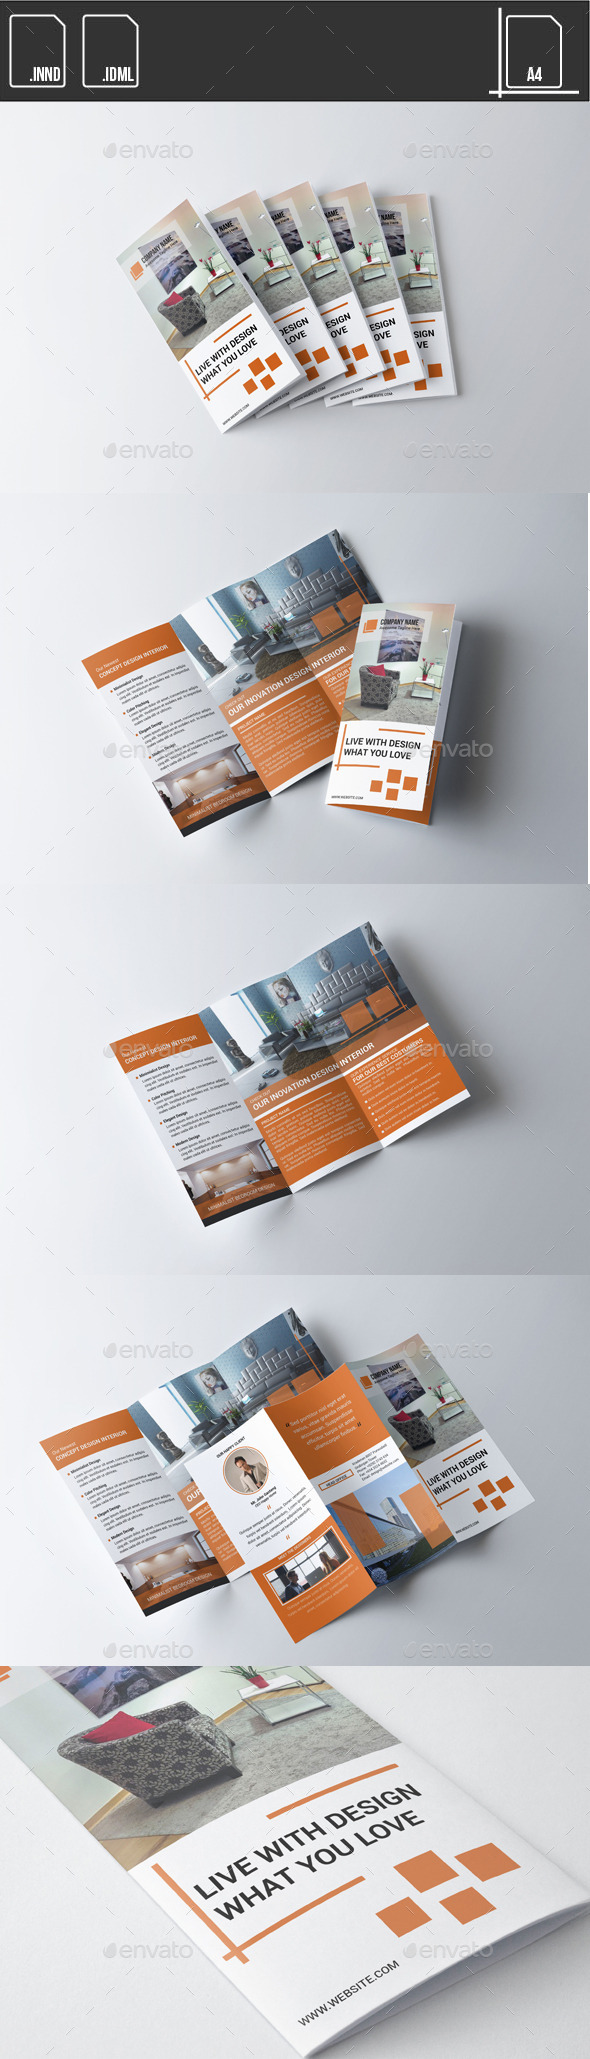 GraphicRiver Brochure Trifold Design Interior 11466082